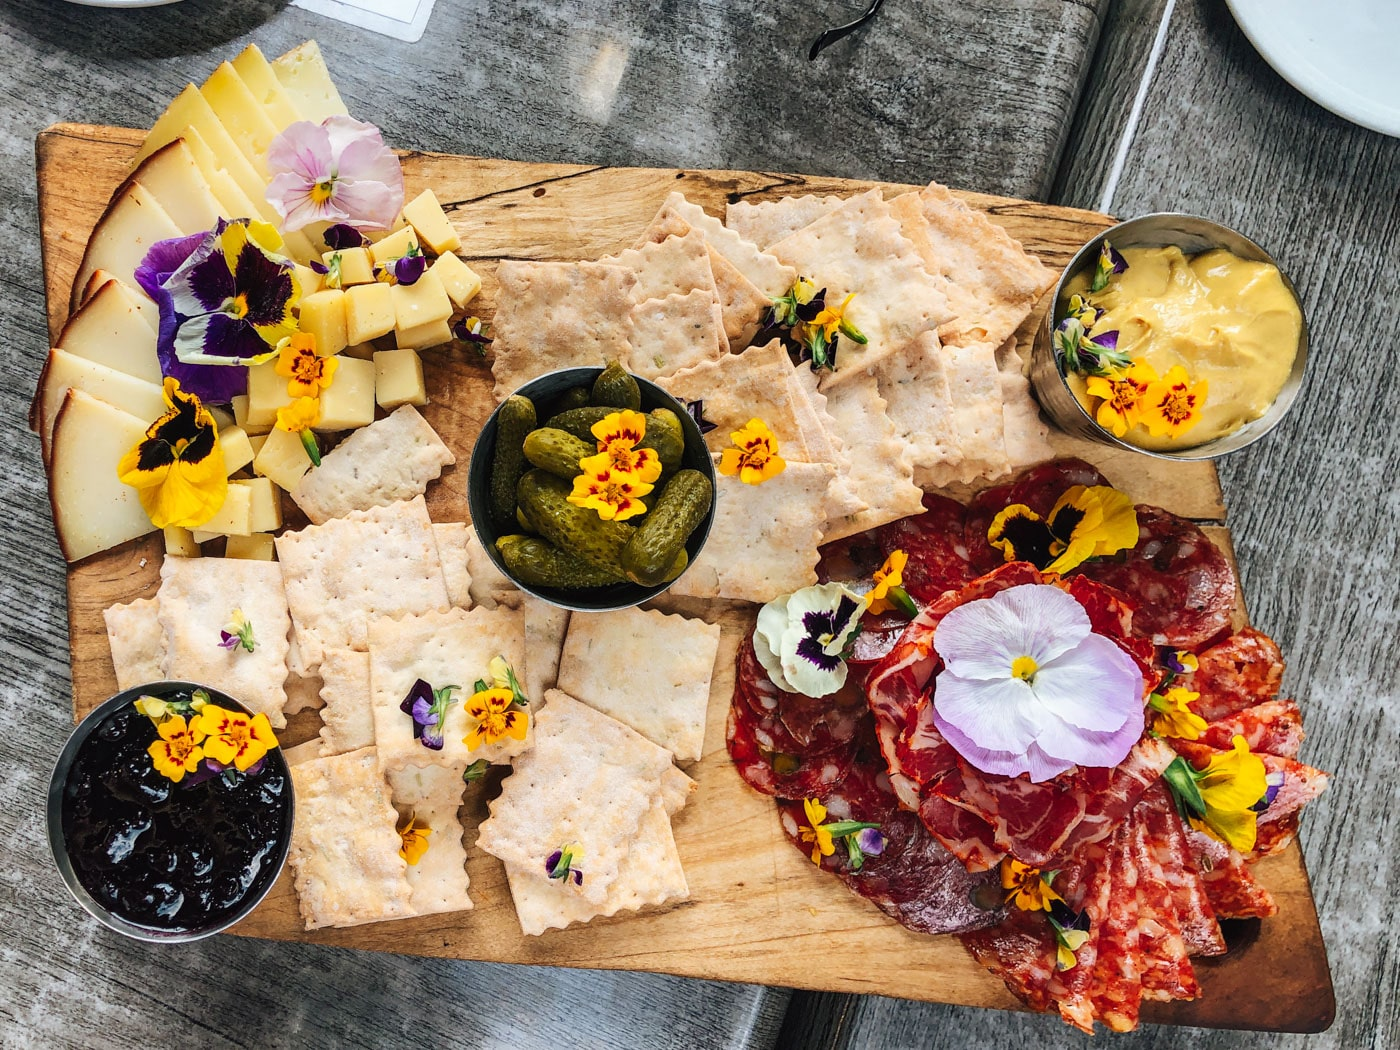 Cheese Plate from Meat & Cheese in Aspen, Co